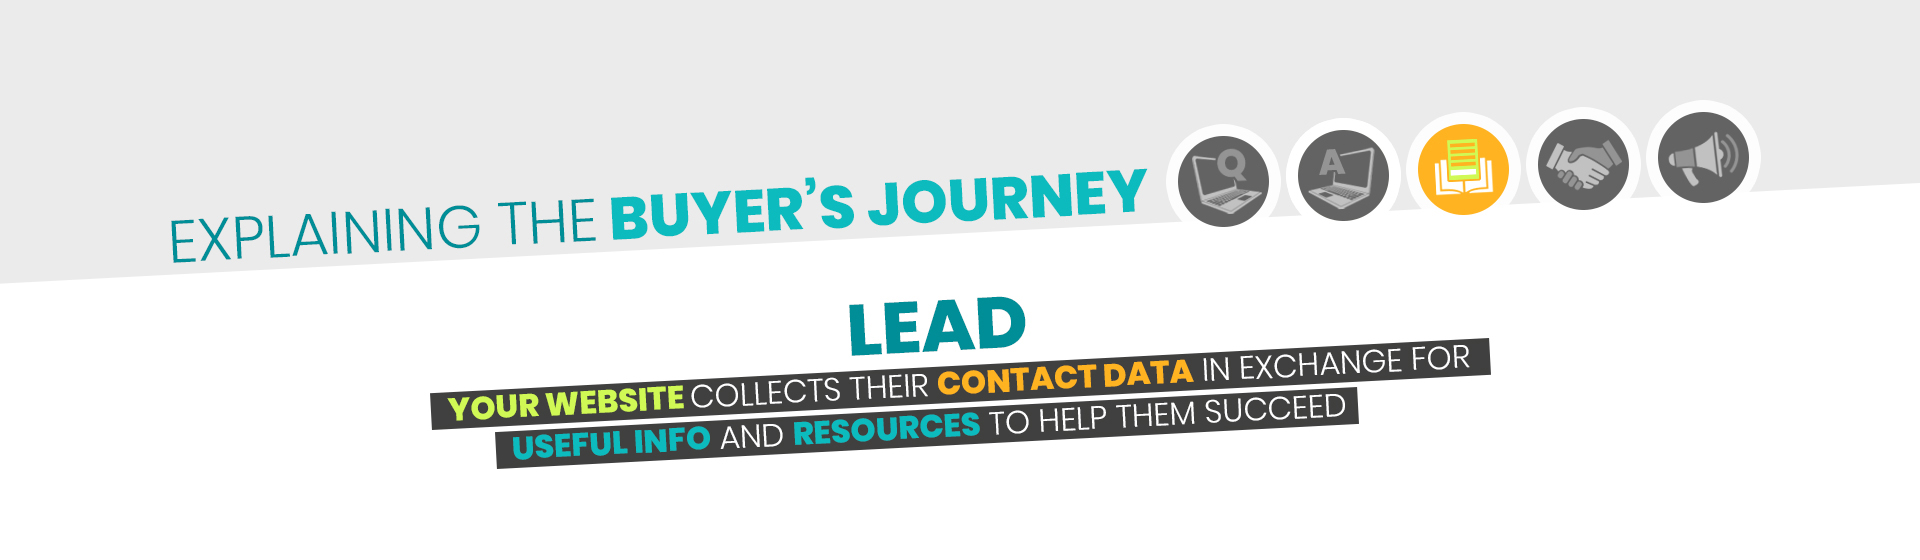 Buyers Journey - Lead-1